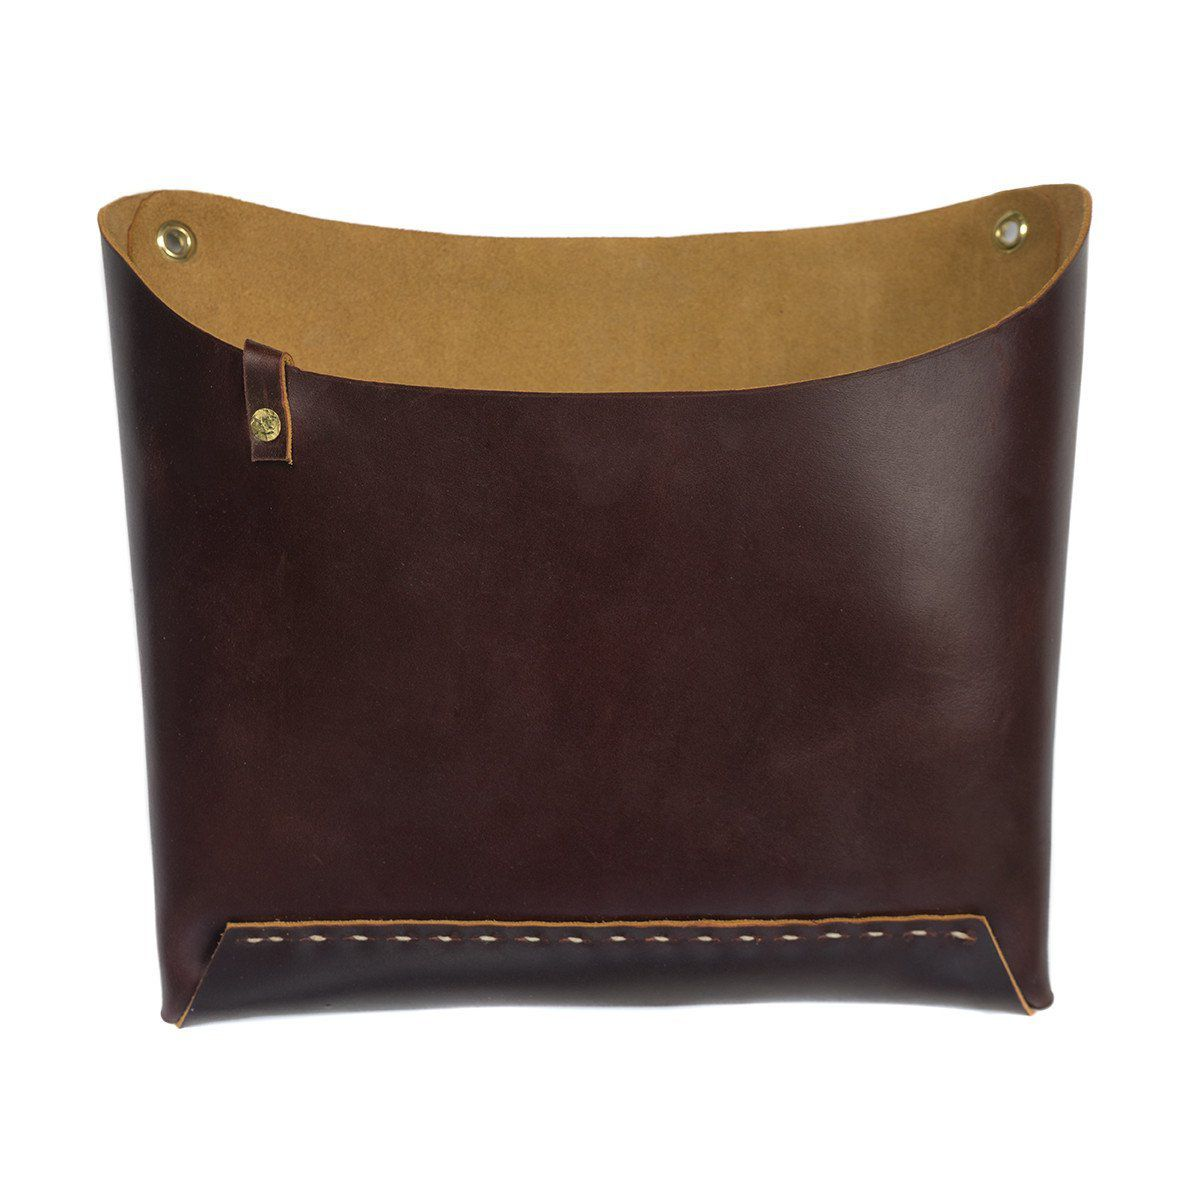 Rustico Leather Wall Pocket